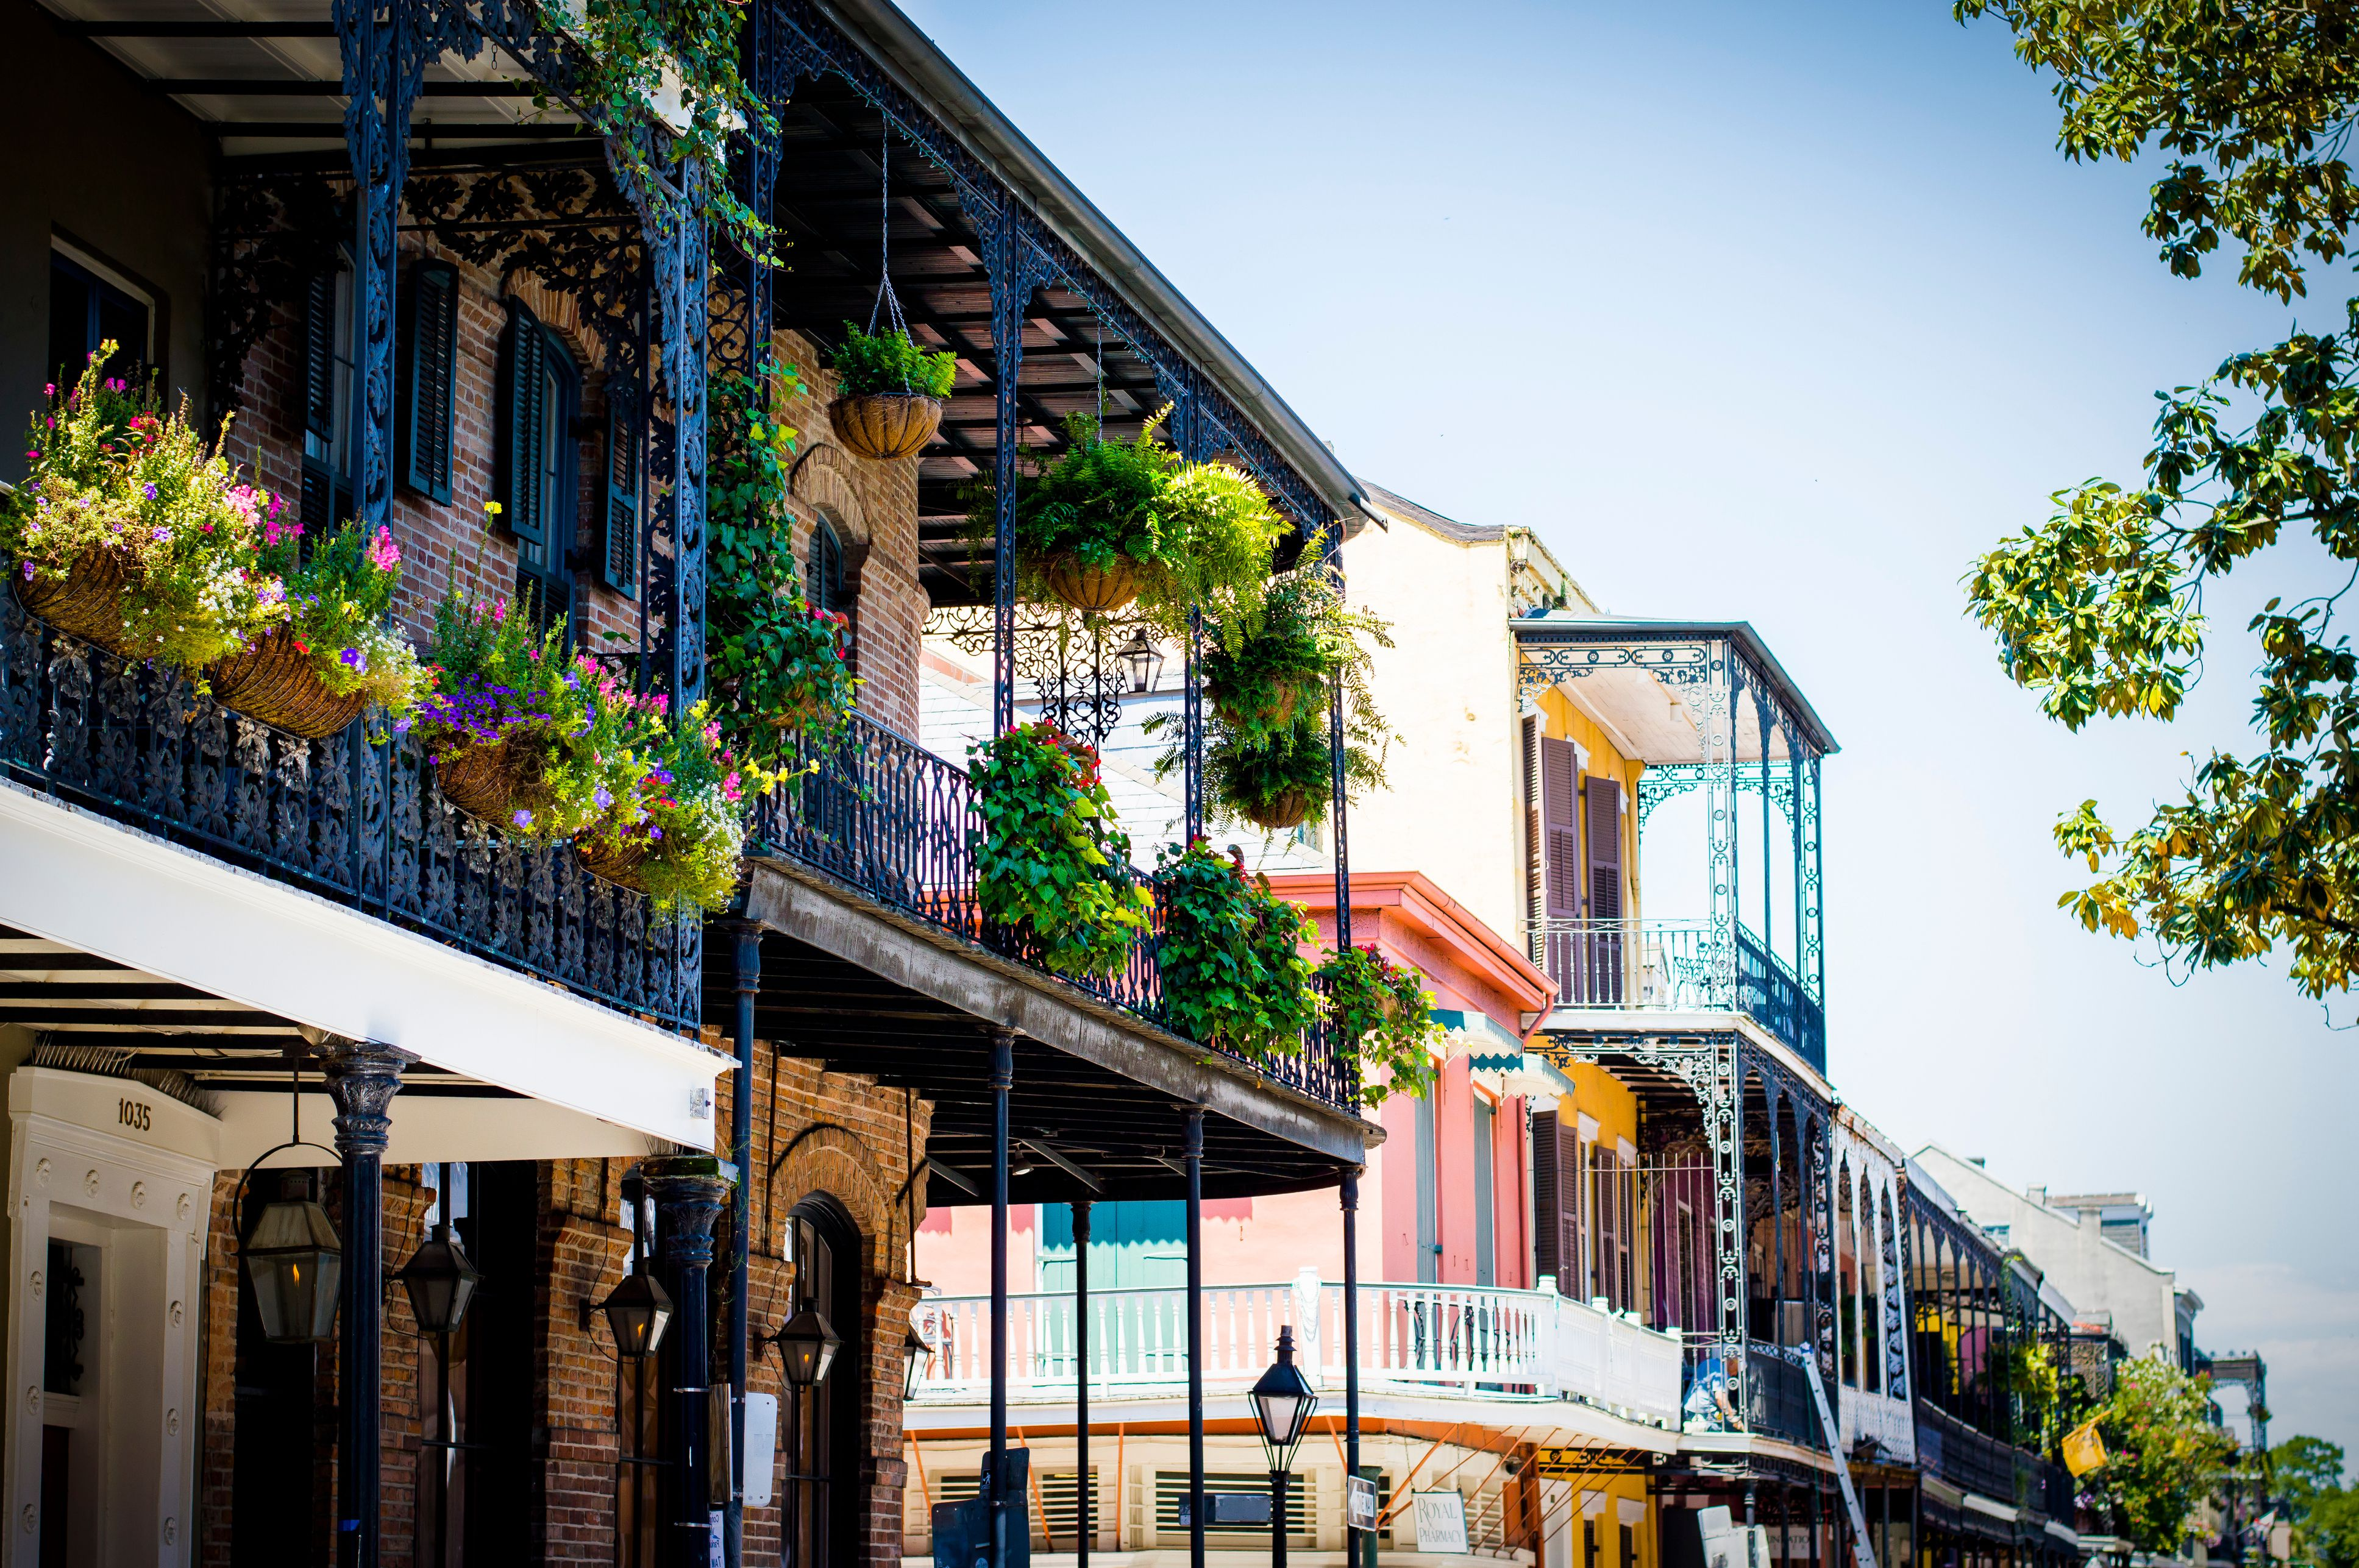 New Orleans Bed and Breakfasts in the French Quarter